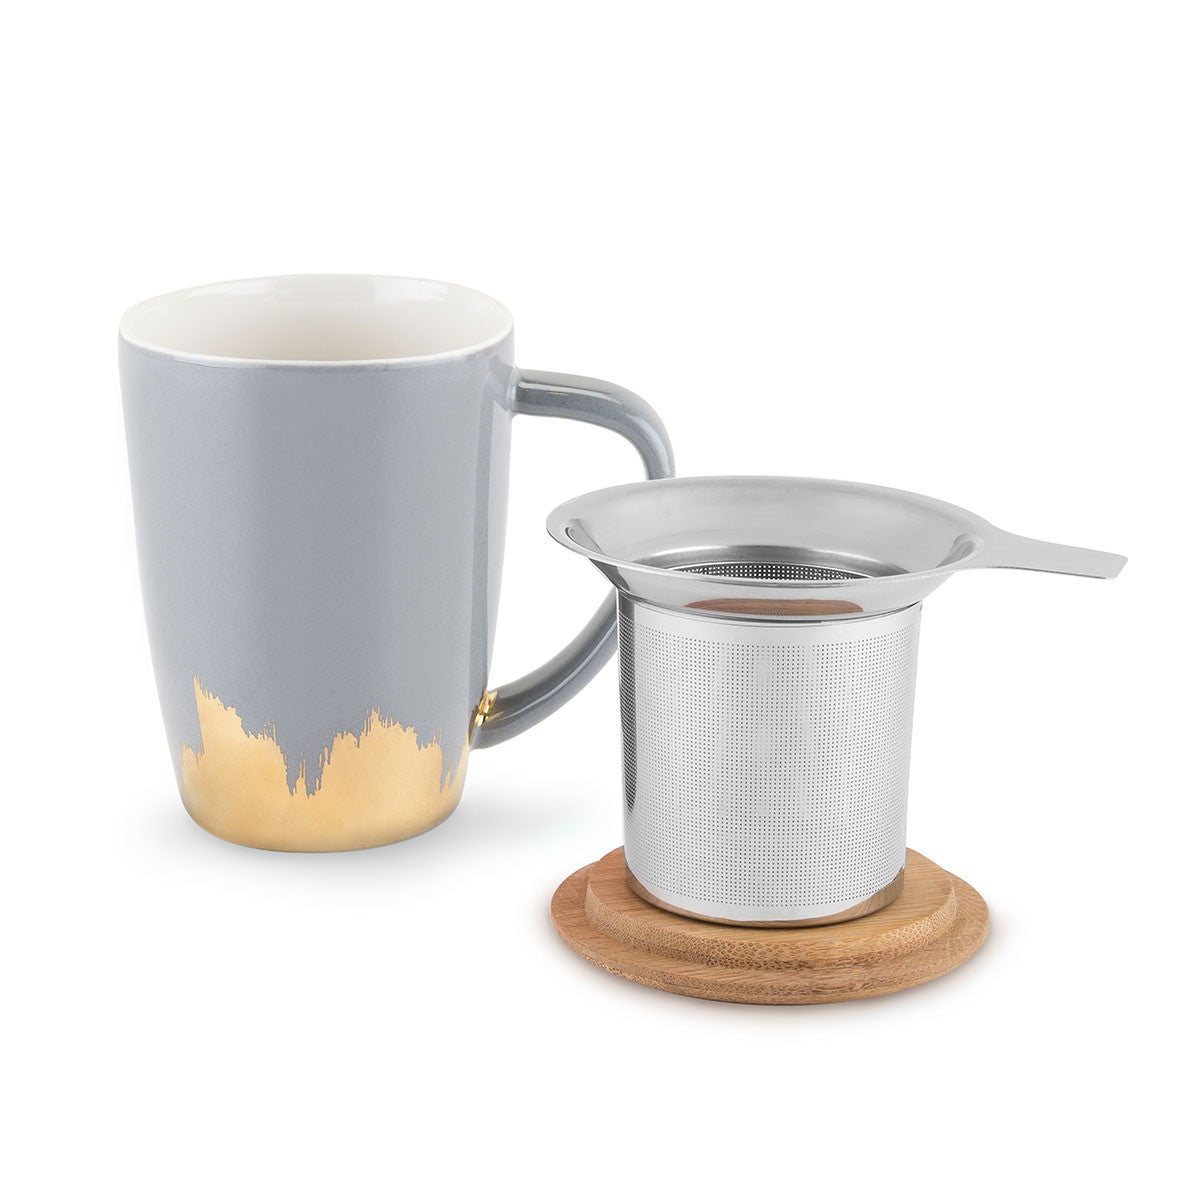 Bailey Grey and Gold Dipped Ceramic Tea Mug and Infuser | Only £19.99